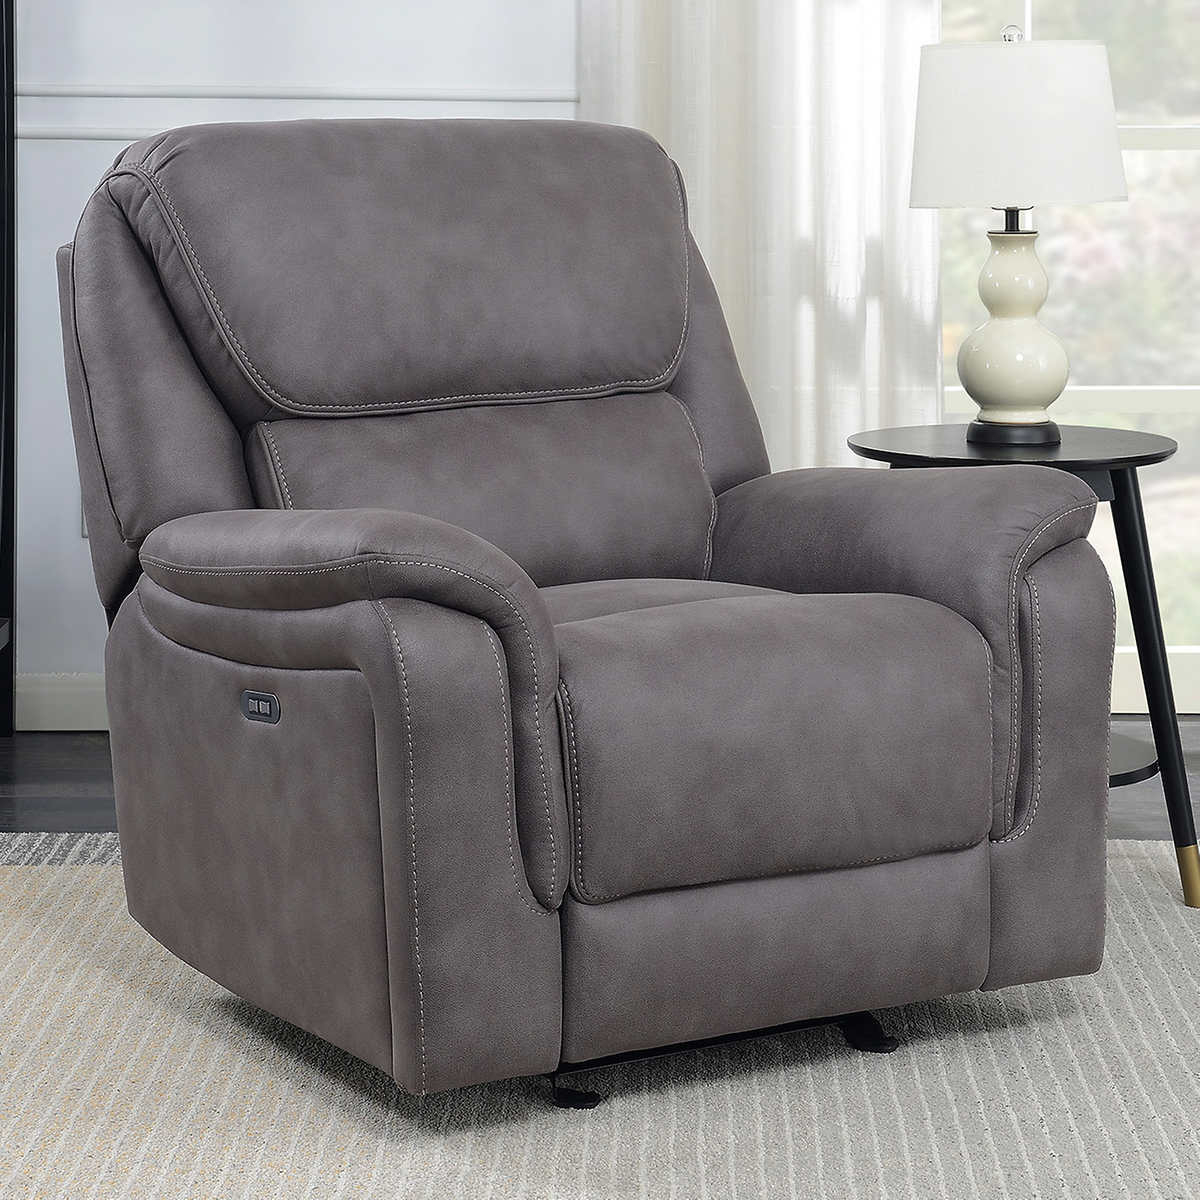 glider recliner chair office arms or not gates fabric power no sales tax ebay details about